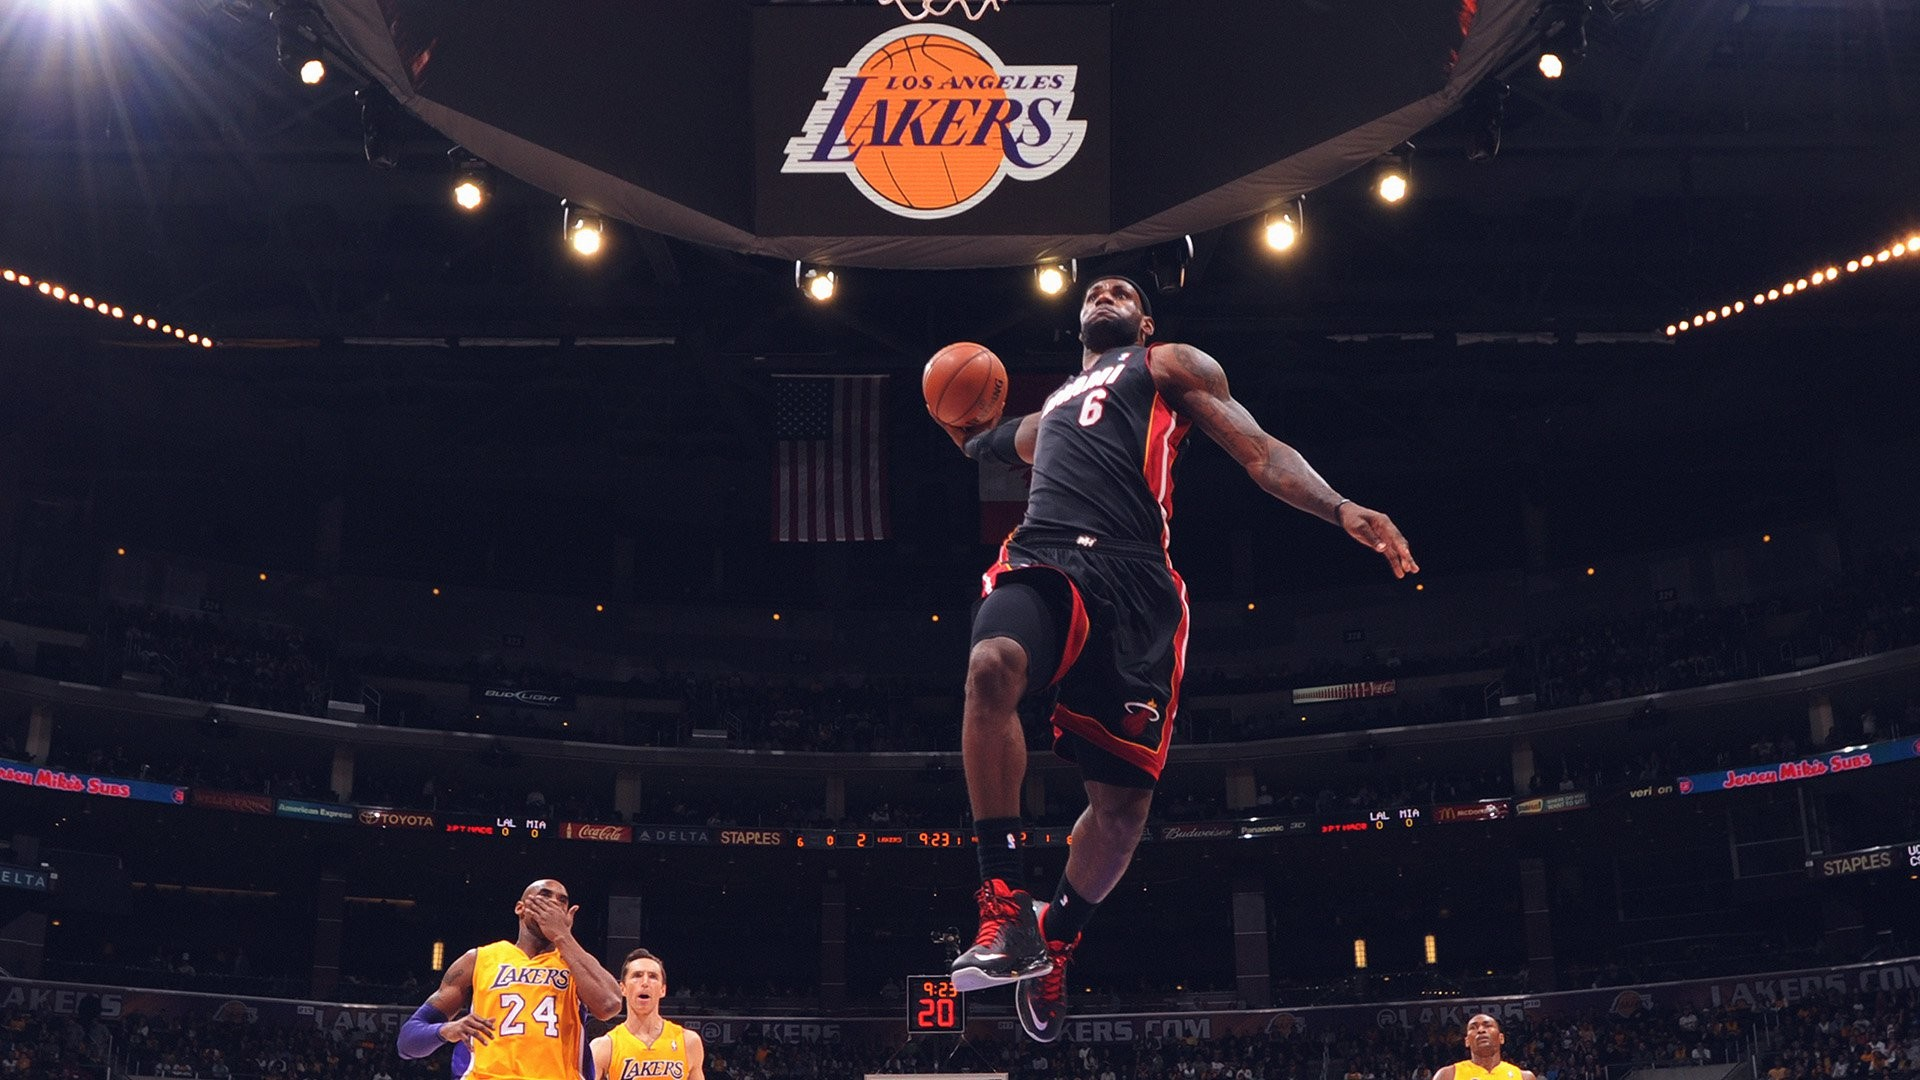 1920x1080 Lebron James Dunk Wallpapers Full Hd